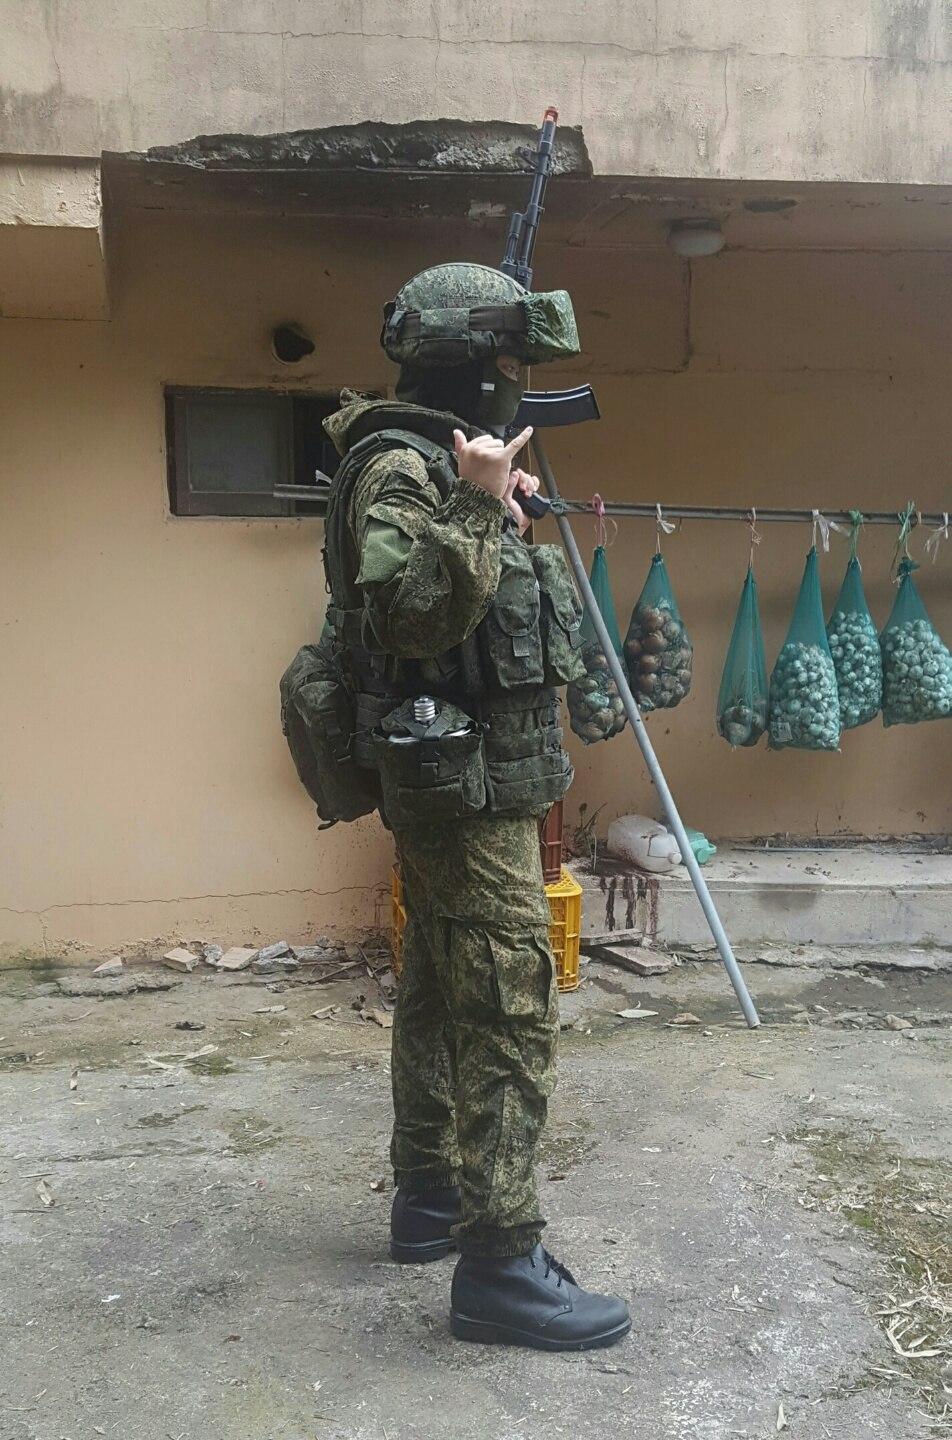 Russian ground force (Army,VDV) 2016 gears set up